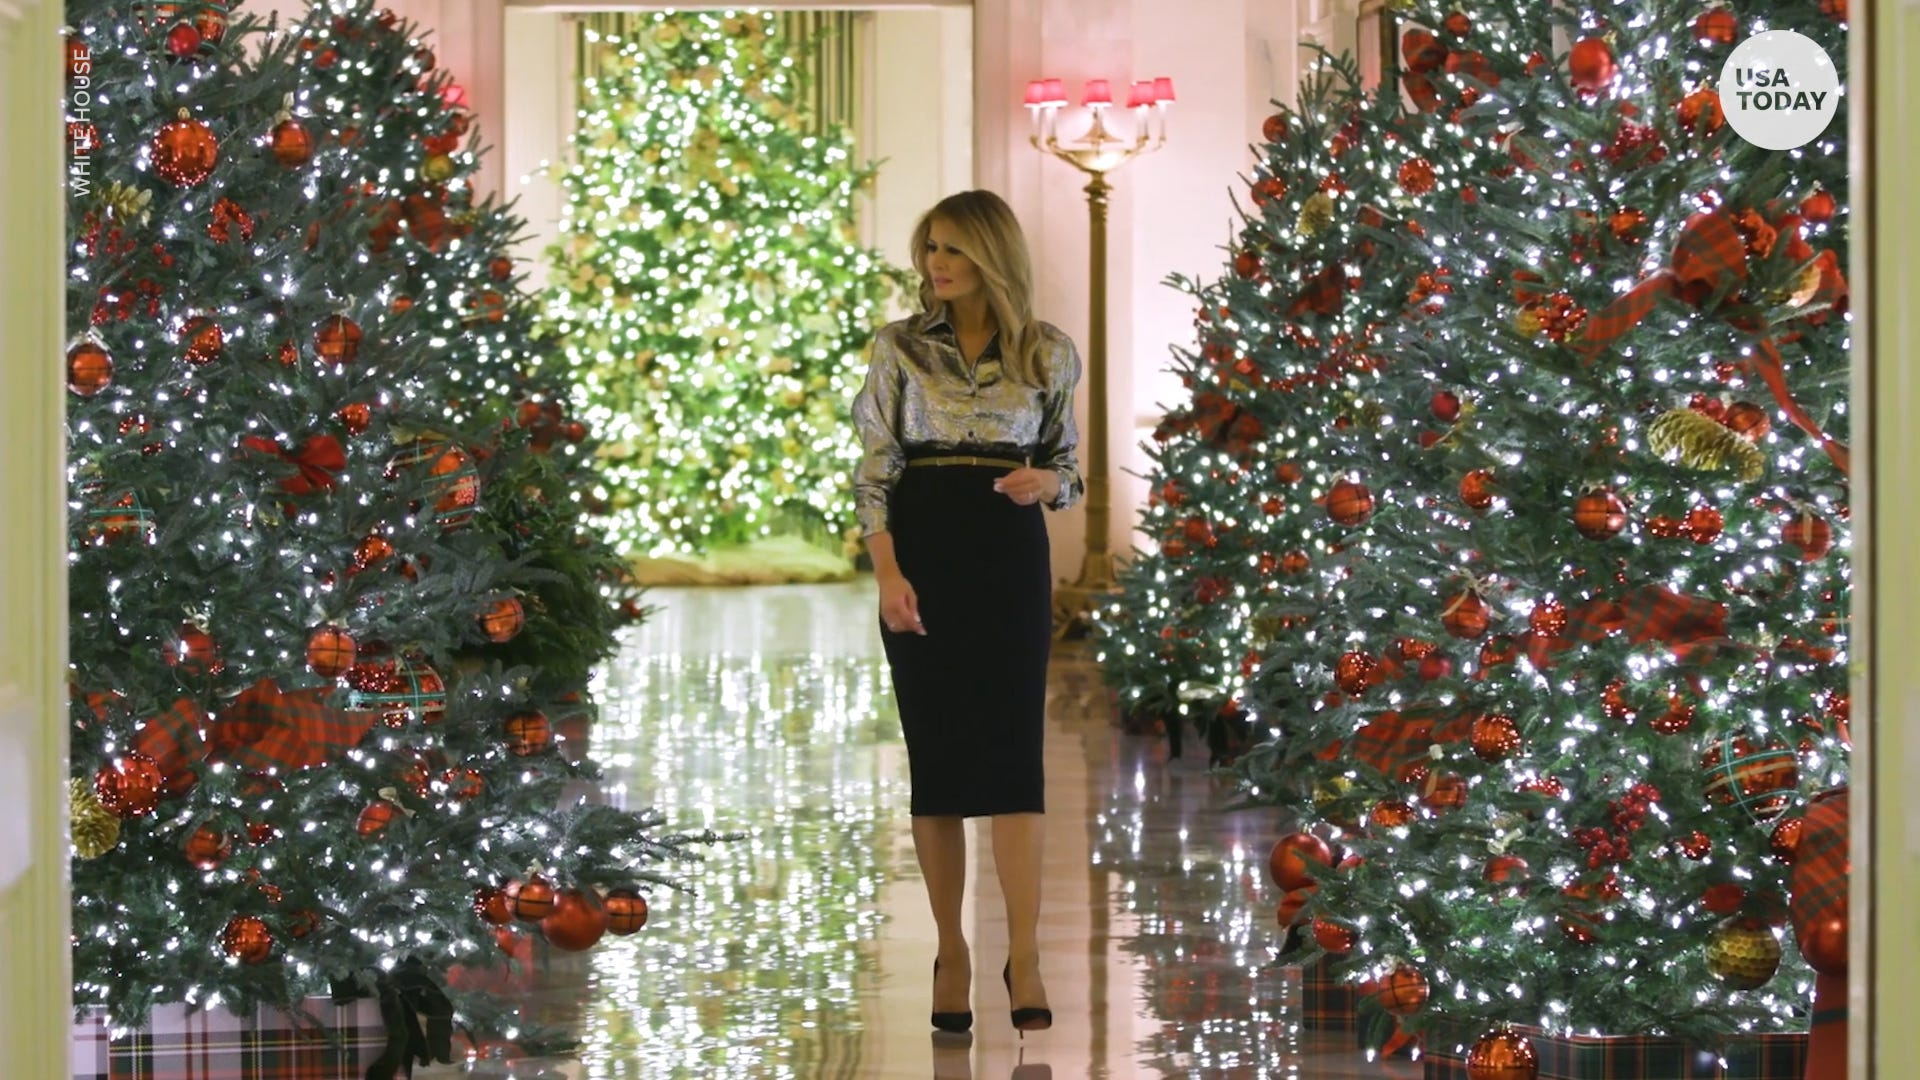 Christmas is in full swing at the White House despite disparaging remarks from FLOTUS